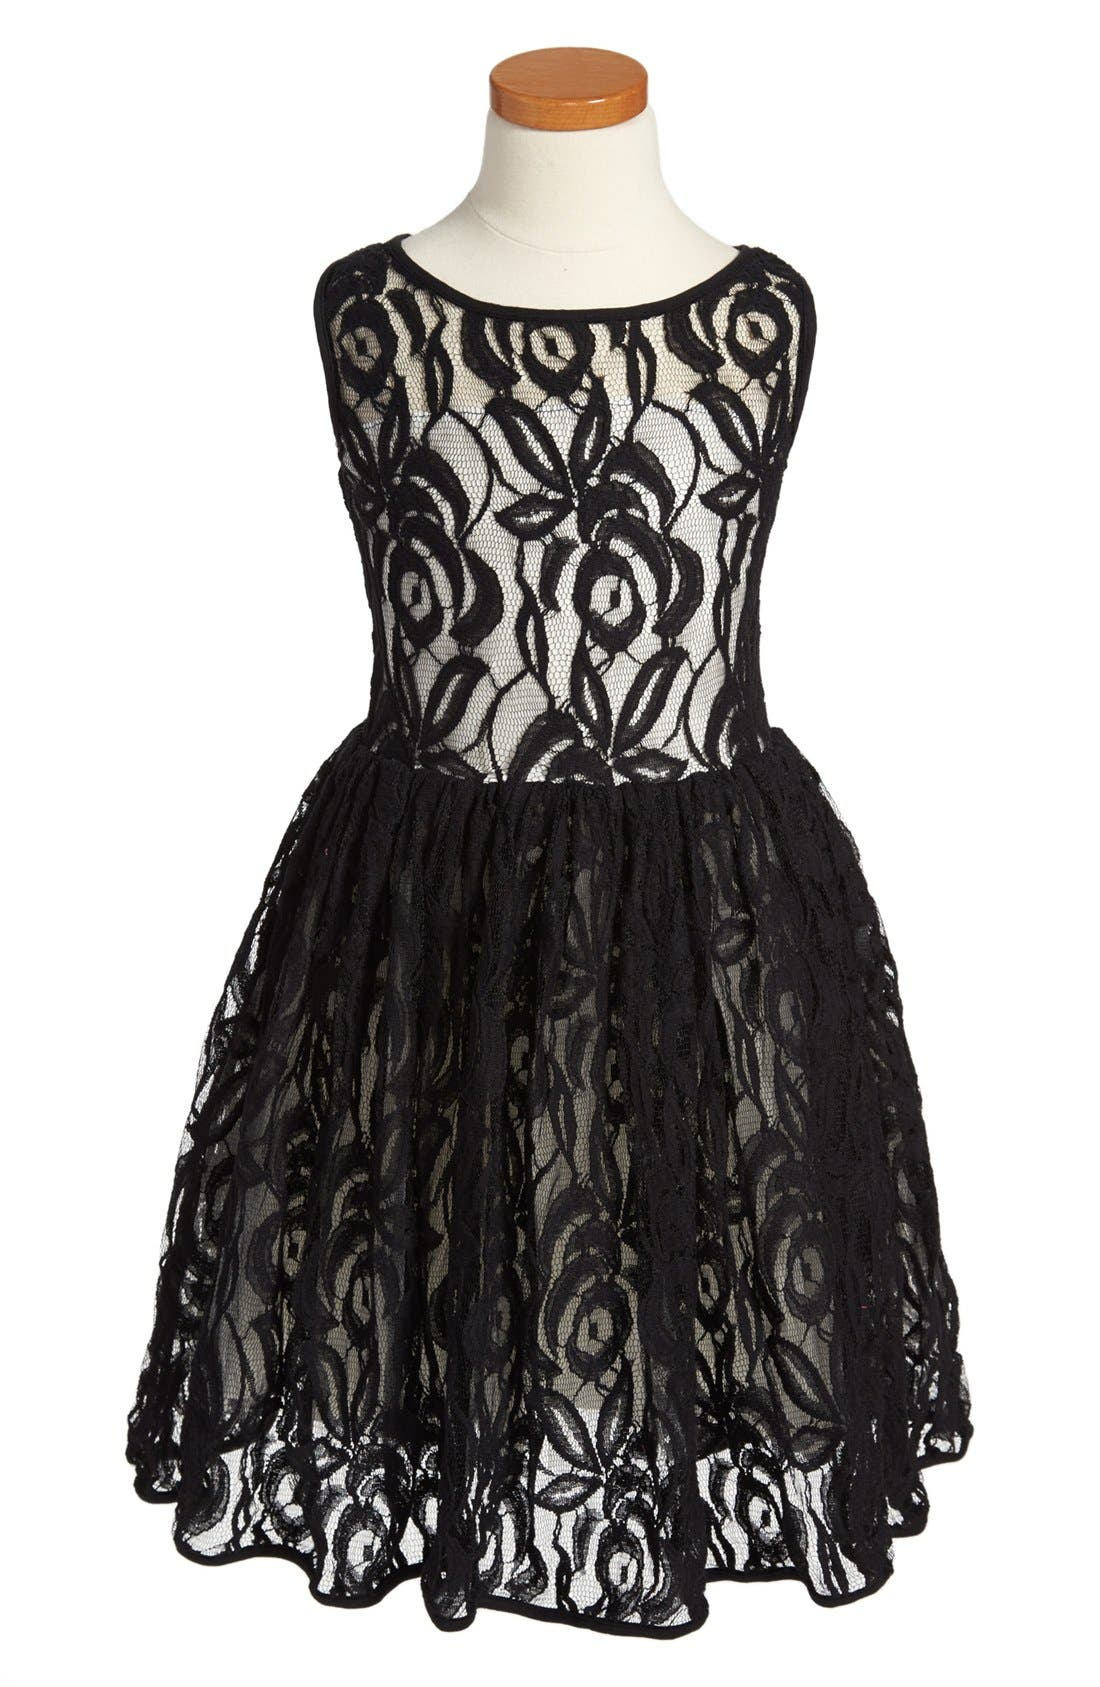 Alternate Image 1 Selected - Fiveloaves Twofish 'Mozart' Sleeveless Lace Dress (Little Girls & Big Girls)